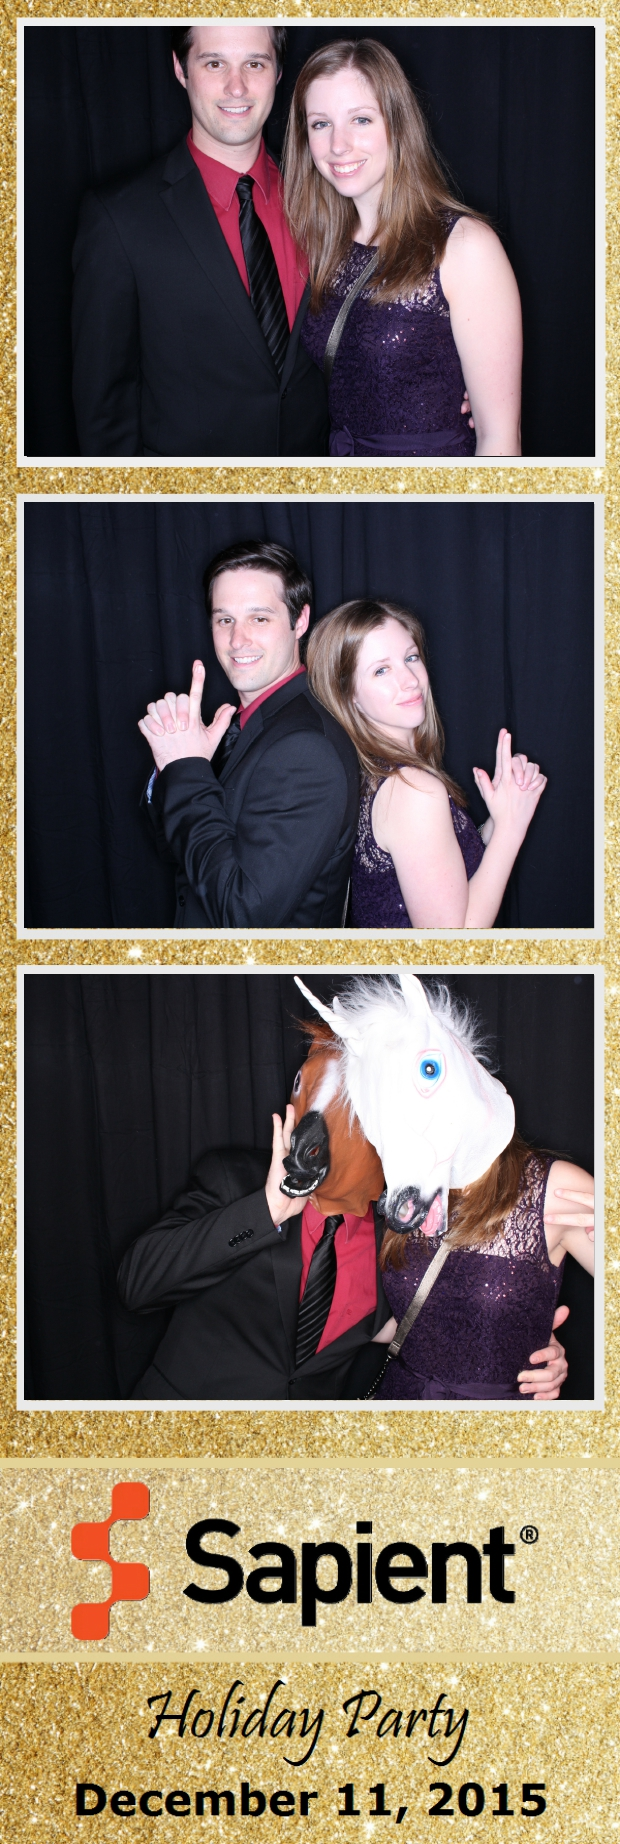 Guest House Events Photo Booth Sapient Holiday Party (61).jpg